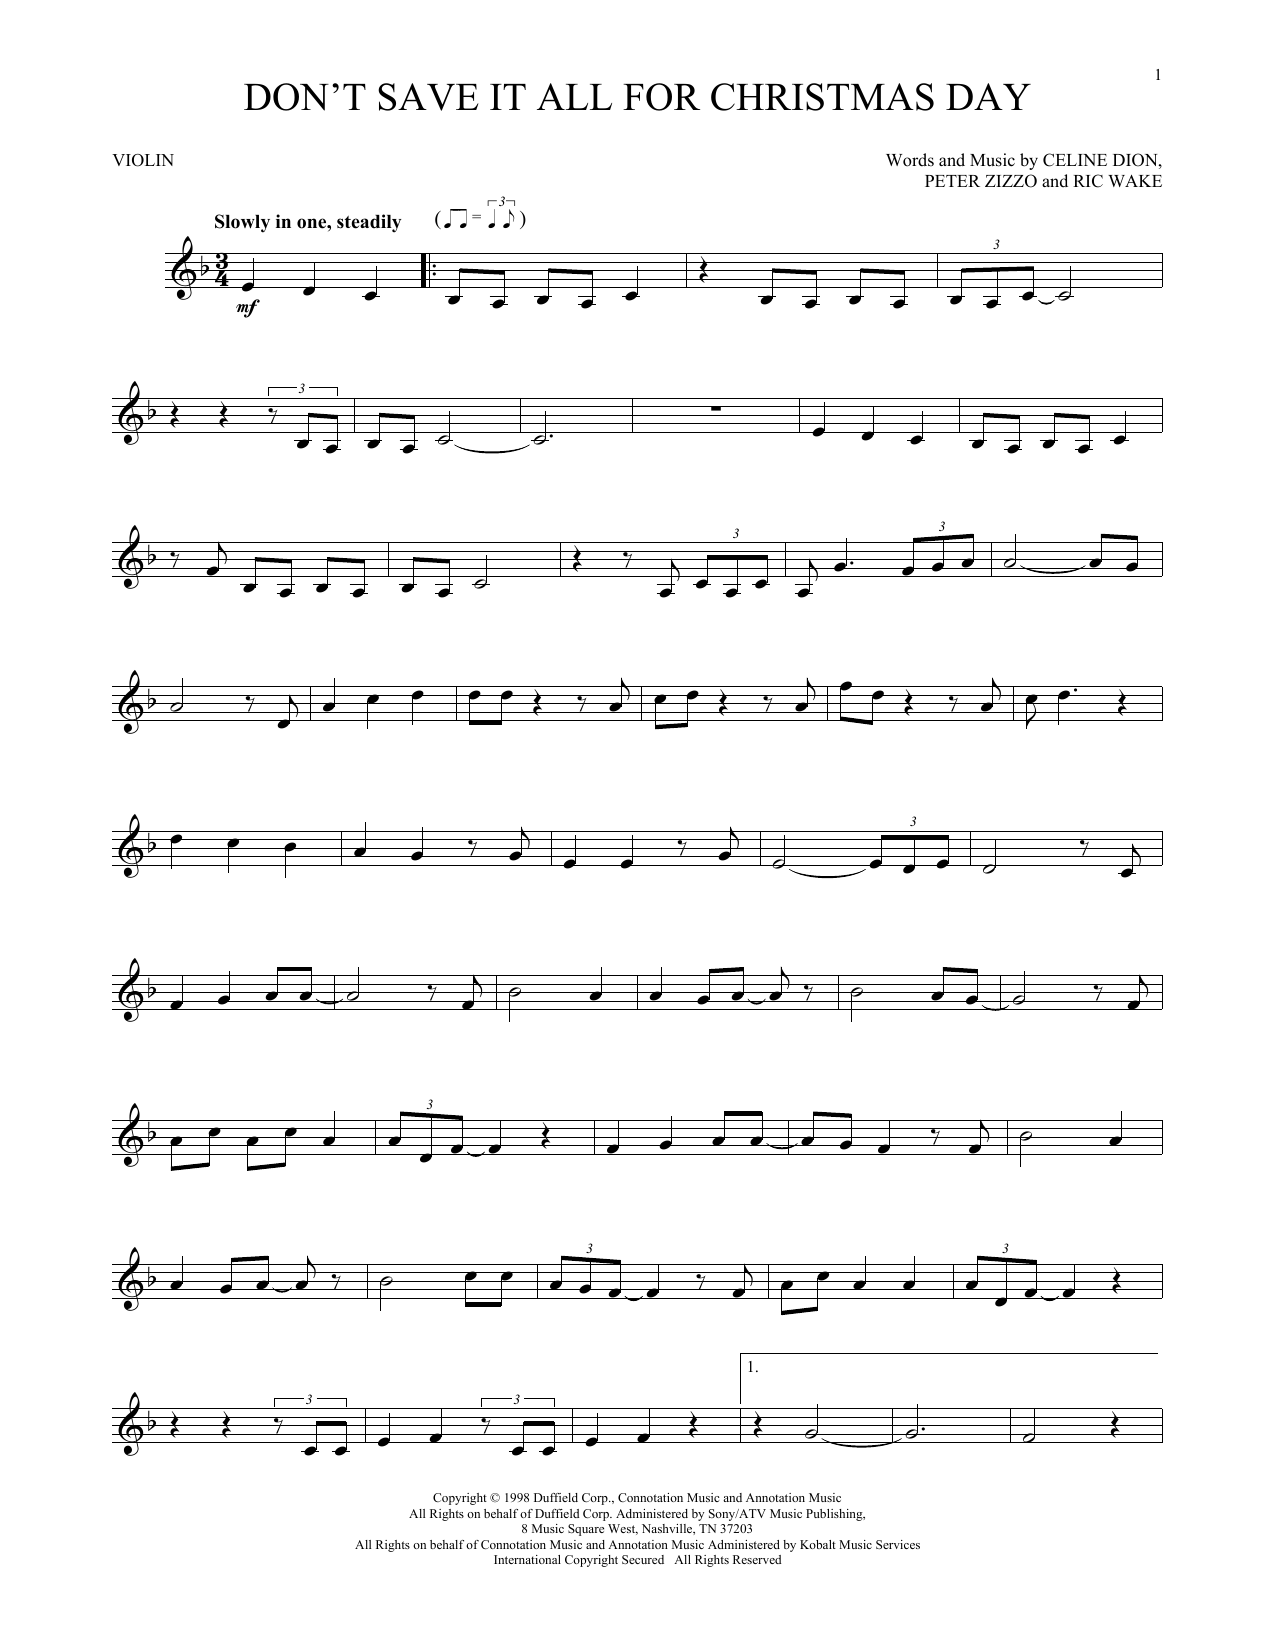 Don't Save It All For Christmas Day (Violin Solo)